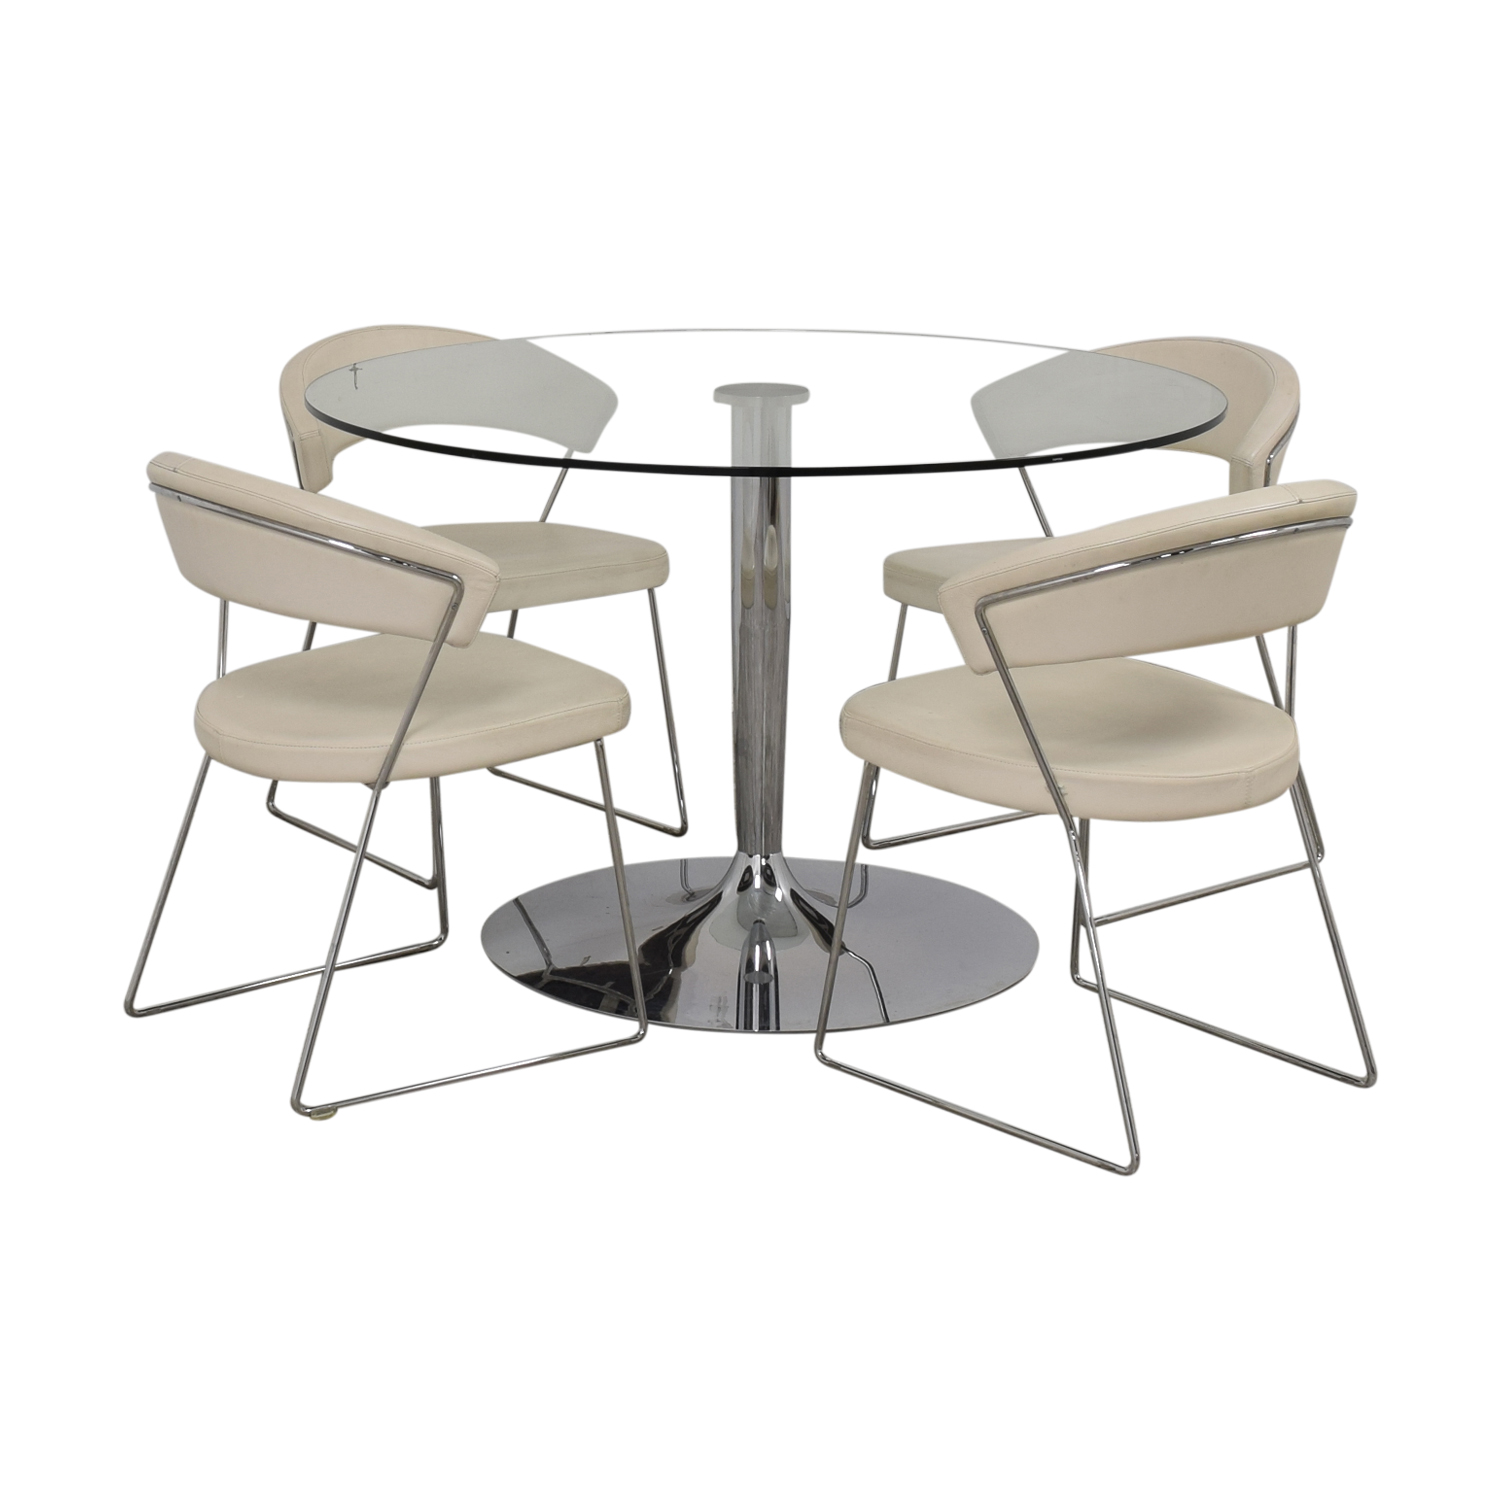 Calligaris Calligaris Planet Glass Dining Table with Calligaris New York  Chairs second hand